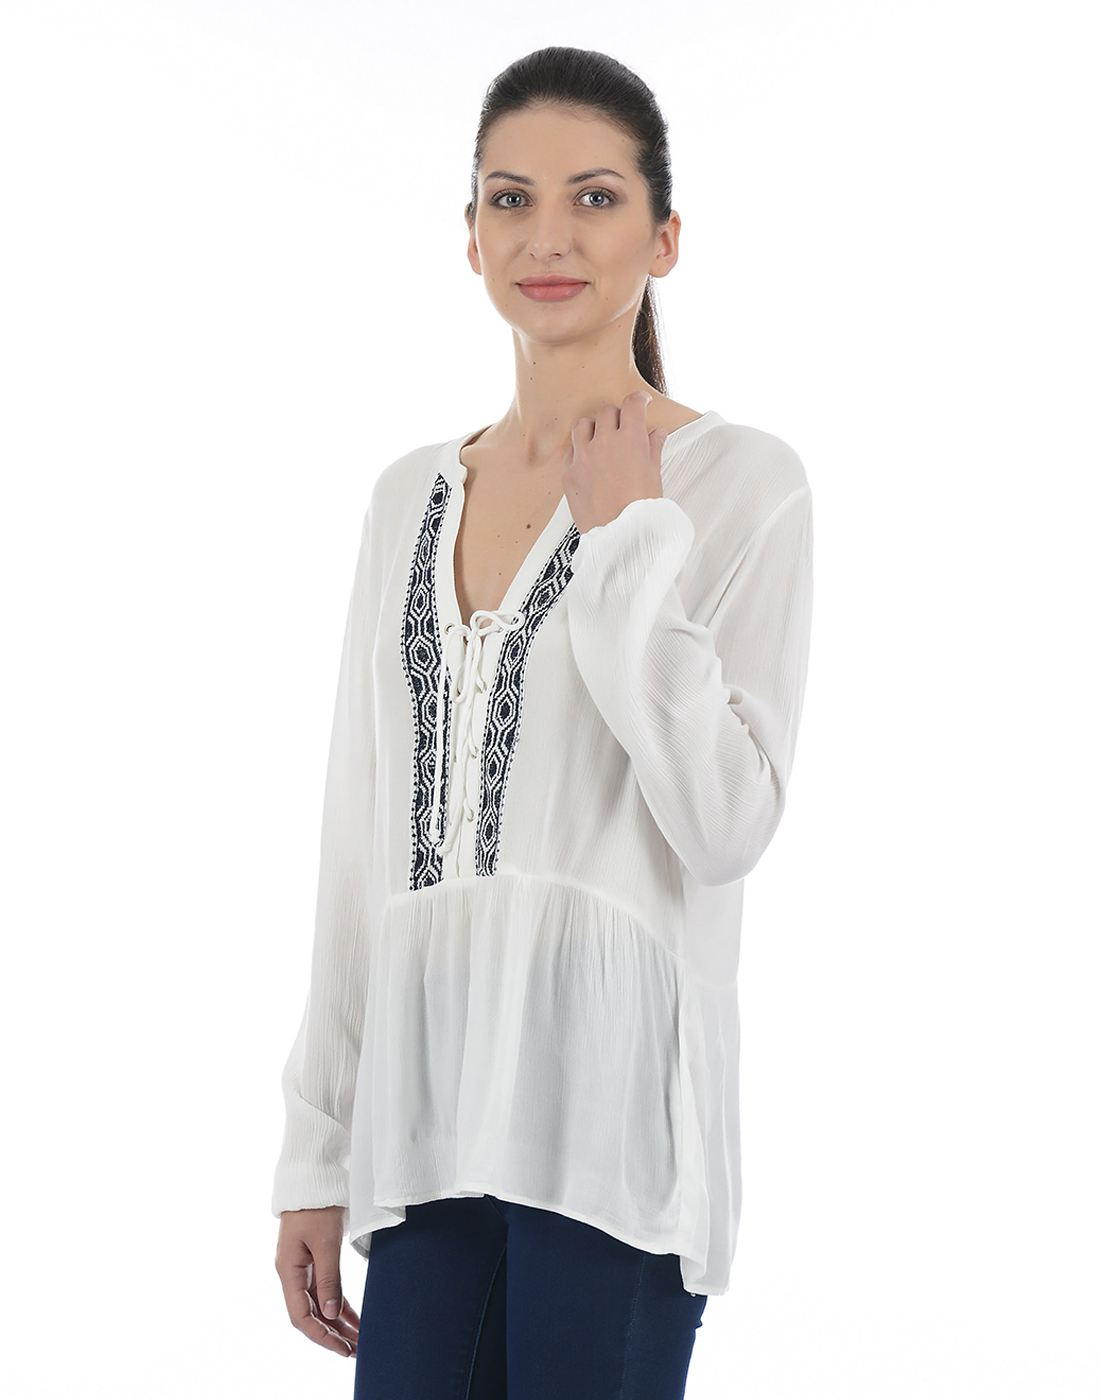 Only Women Casual White Top